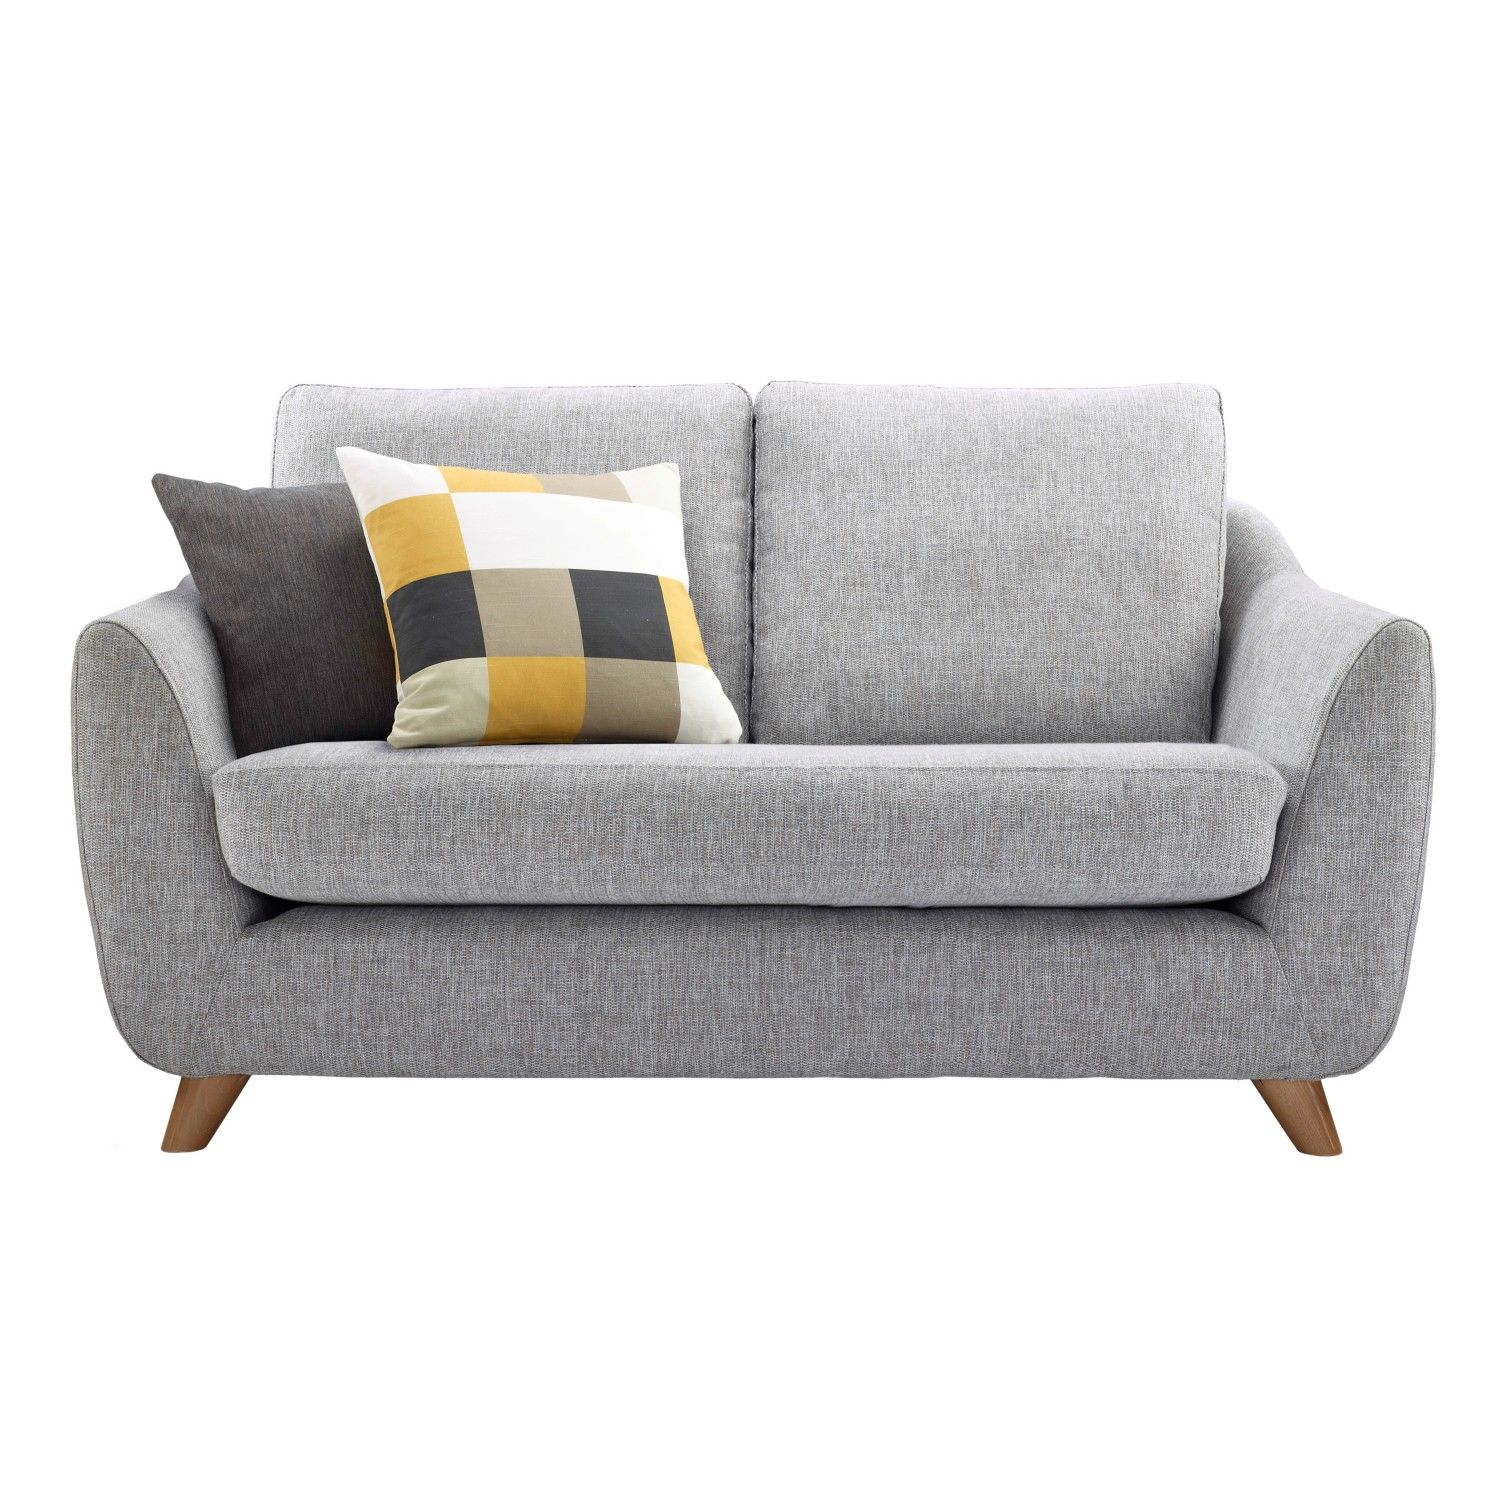 Attrayant Loveseats For Small Spaces | Cheap Small Sofa Decoration : Fascinating Grey  Legged Cheap Small Sofa